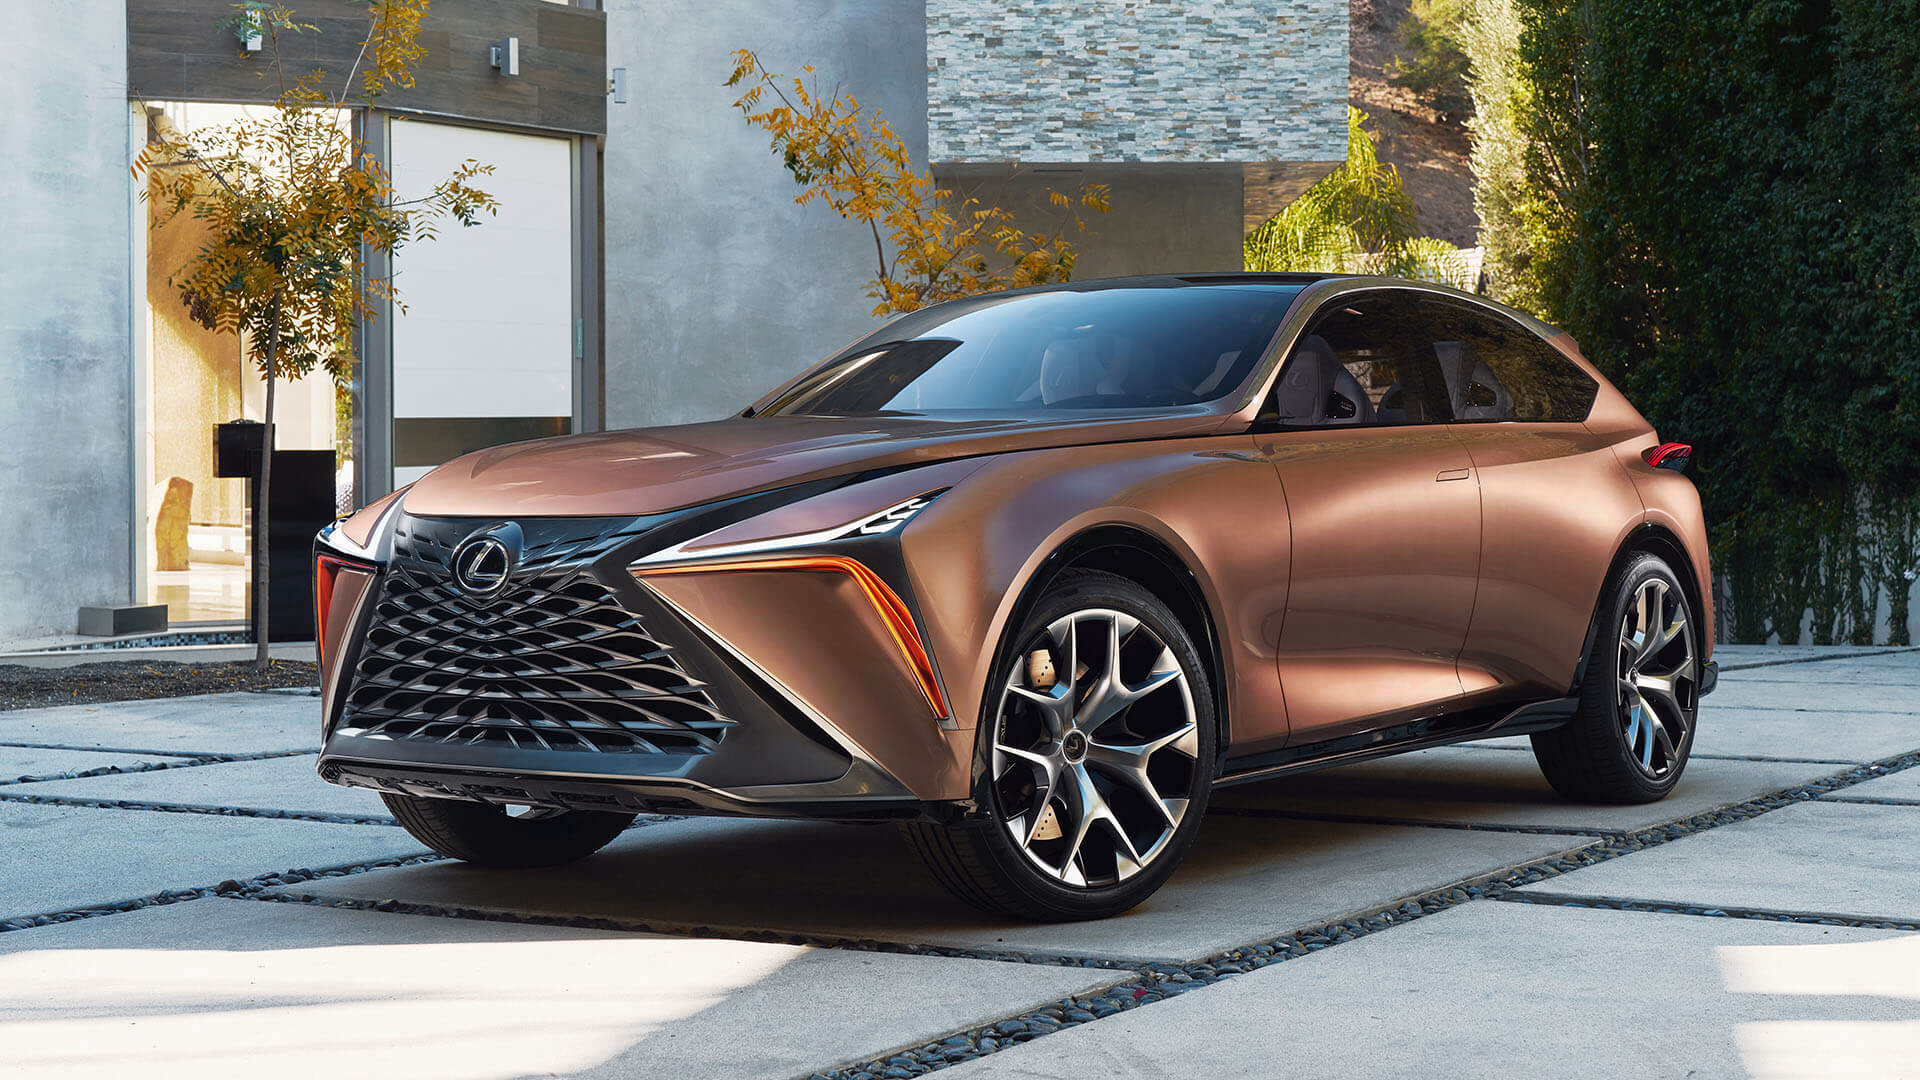 introducing all new lexus lf 1 limitless concept lexus uk. Black Bedroom Furniture Sets. Home Design Ideas